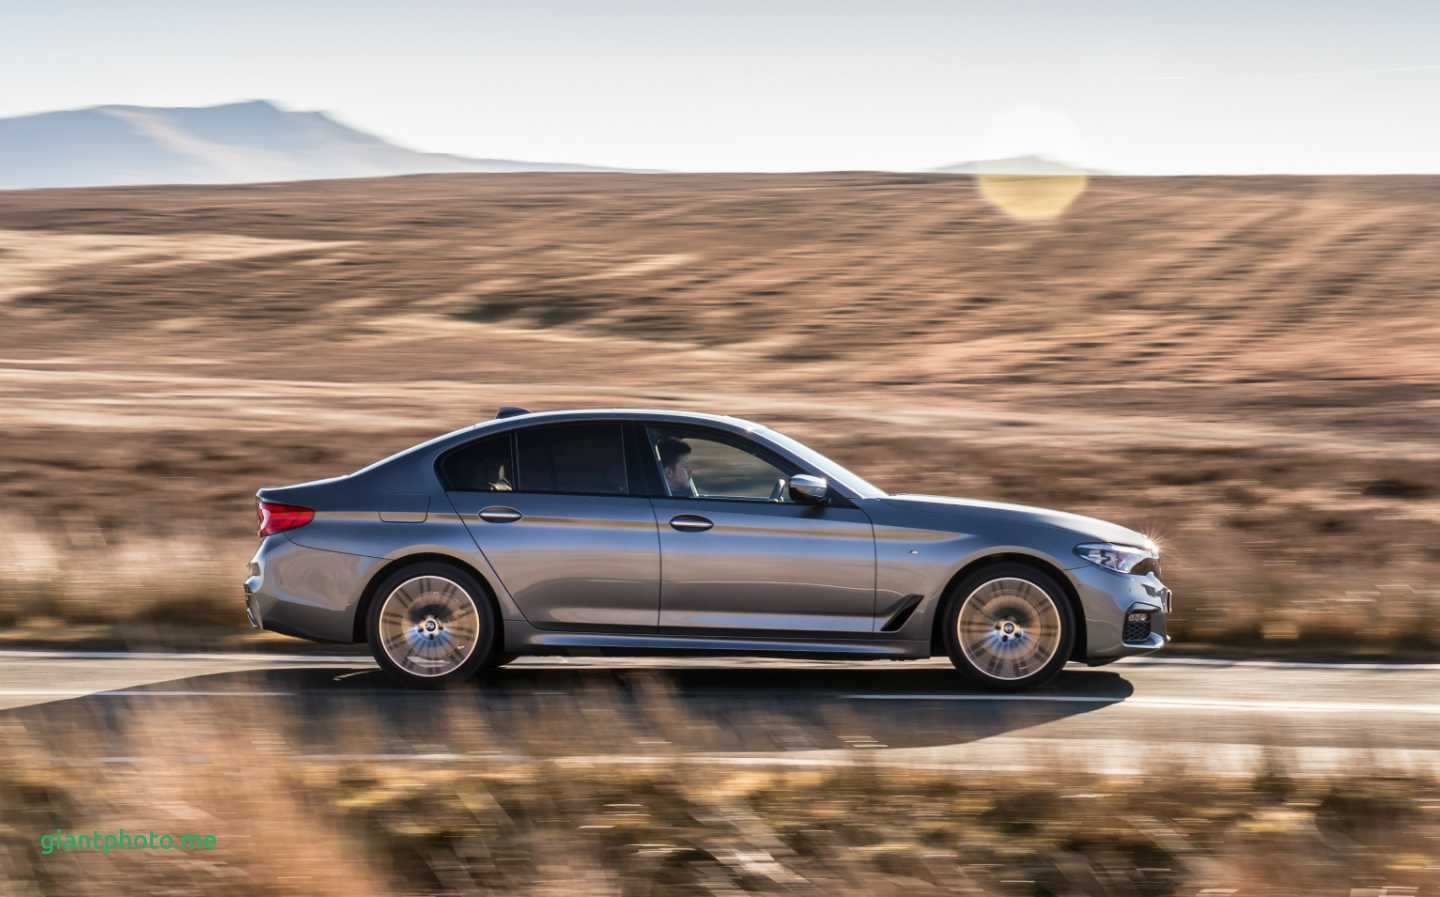 96 A 2020 BMW 7 Series Perfection New Review And Release Date